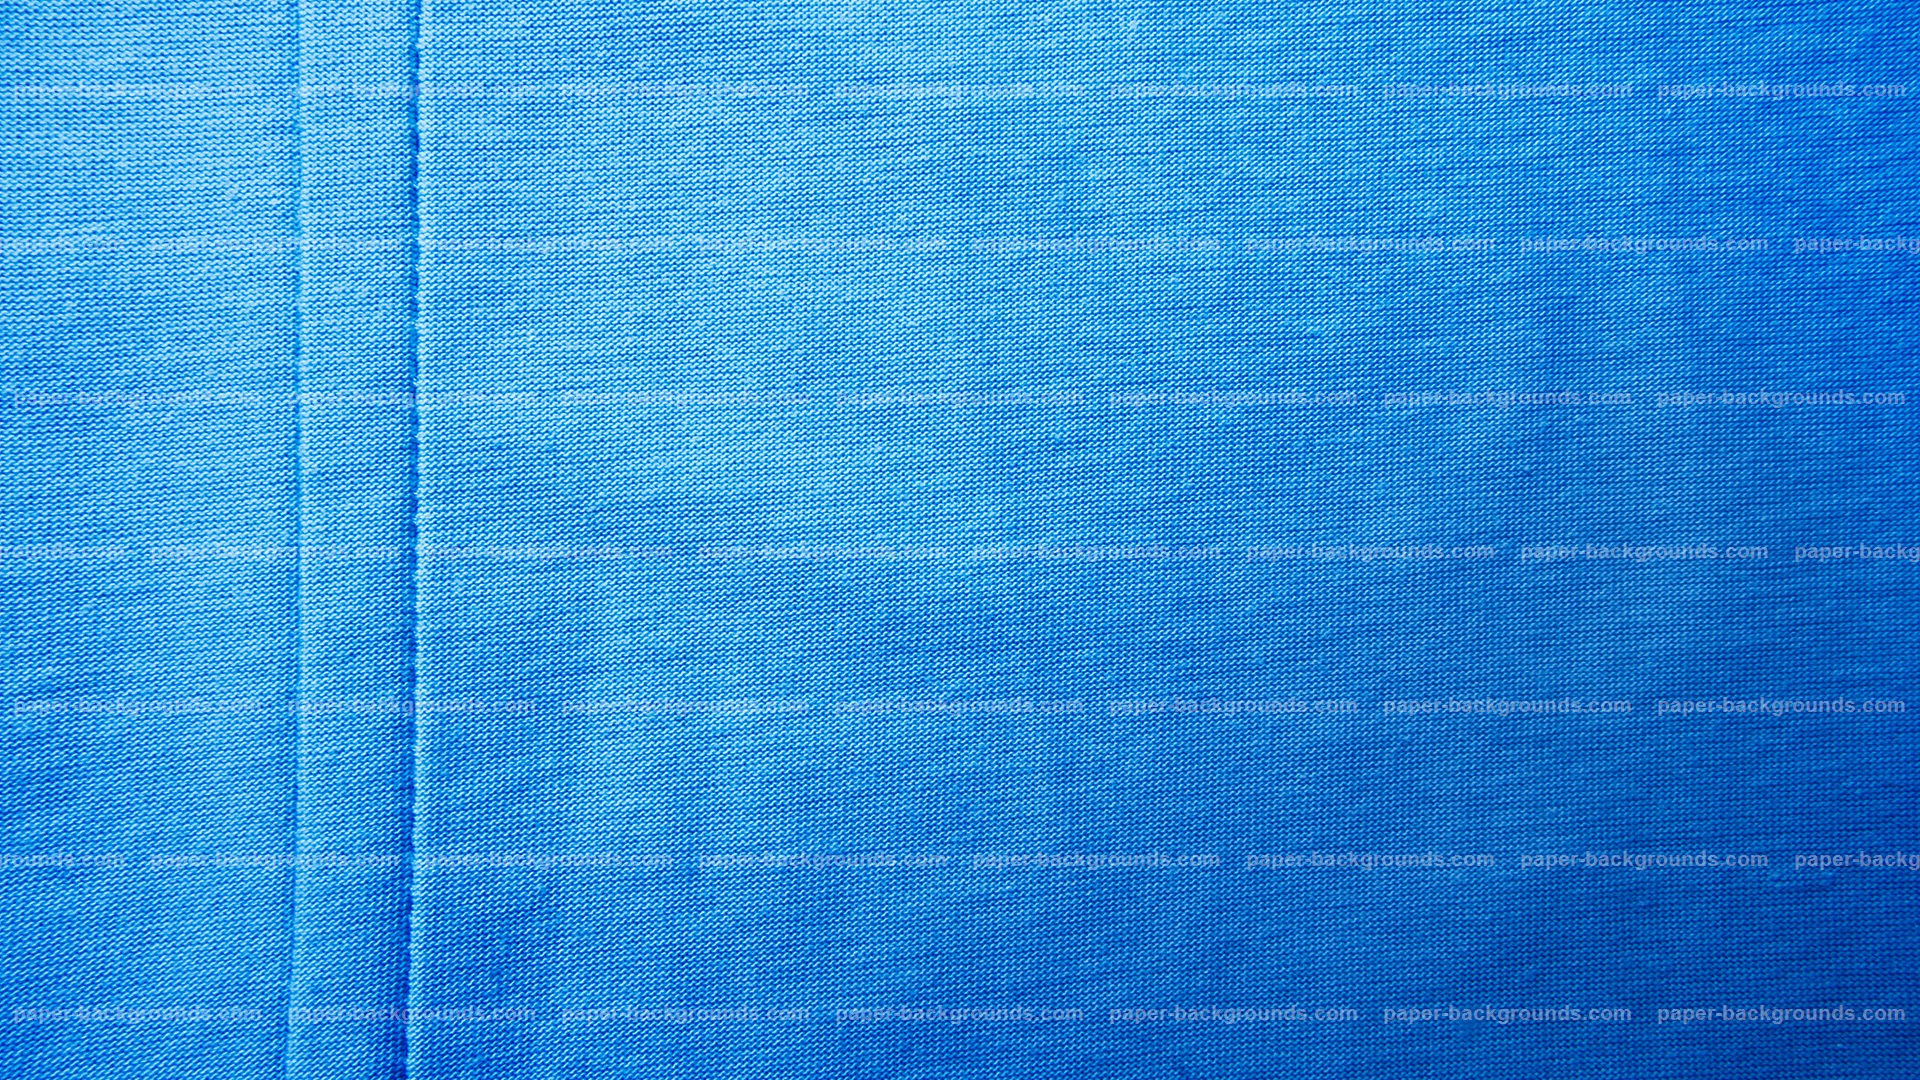 Blue Fabric Canvas Texture with Stitch HD